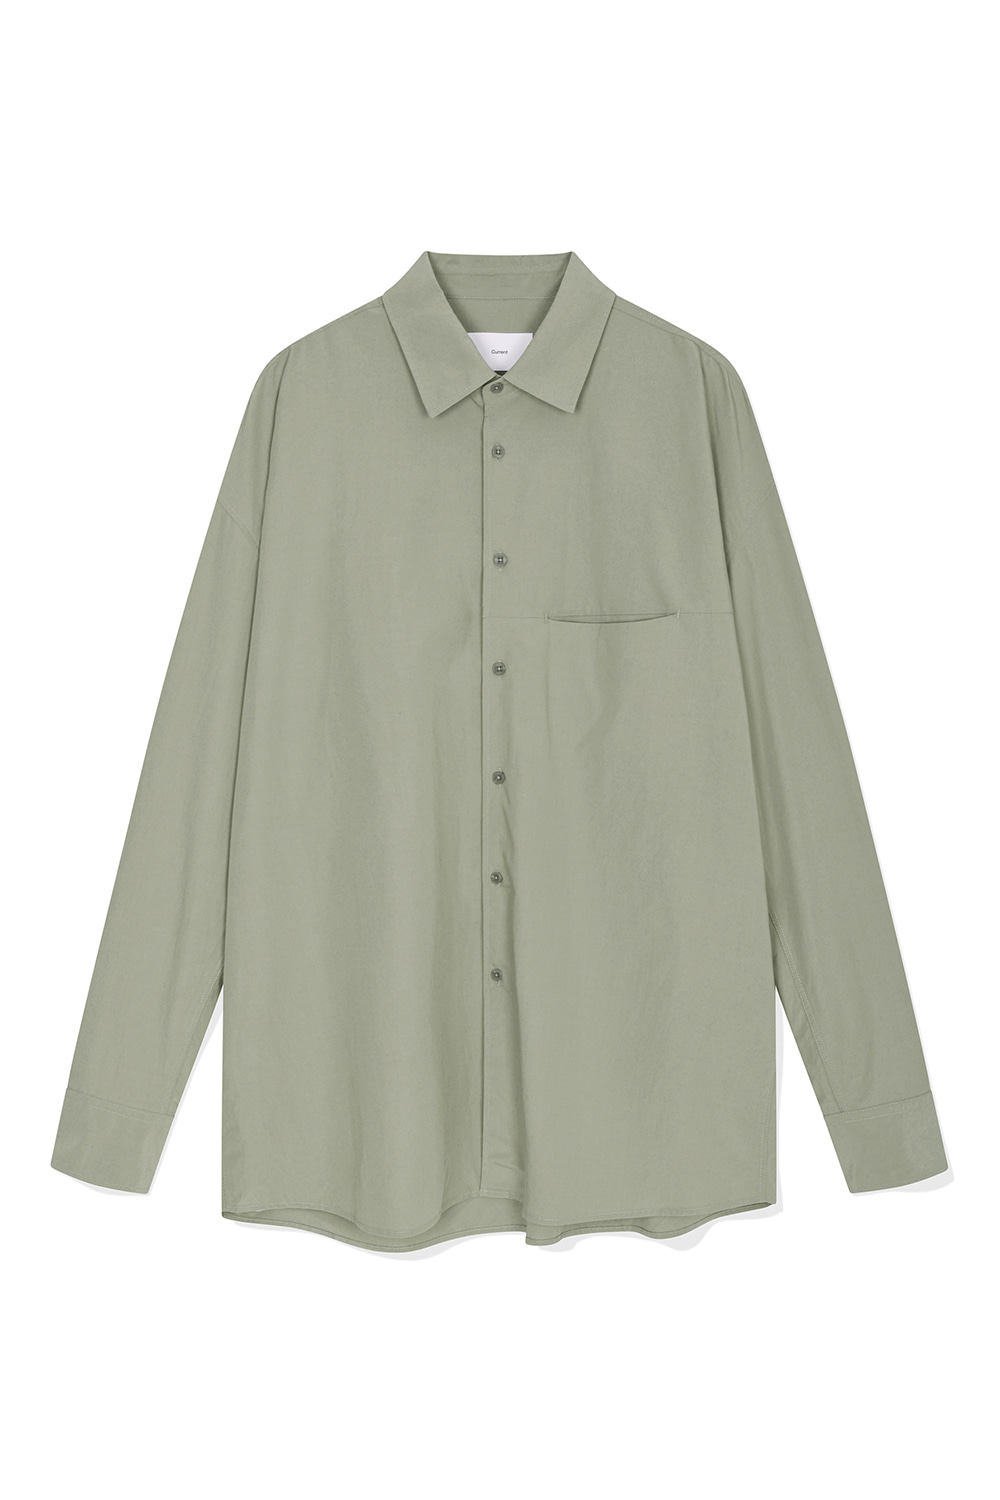 Overfit Shirts Men JA [Khaki] -10%